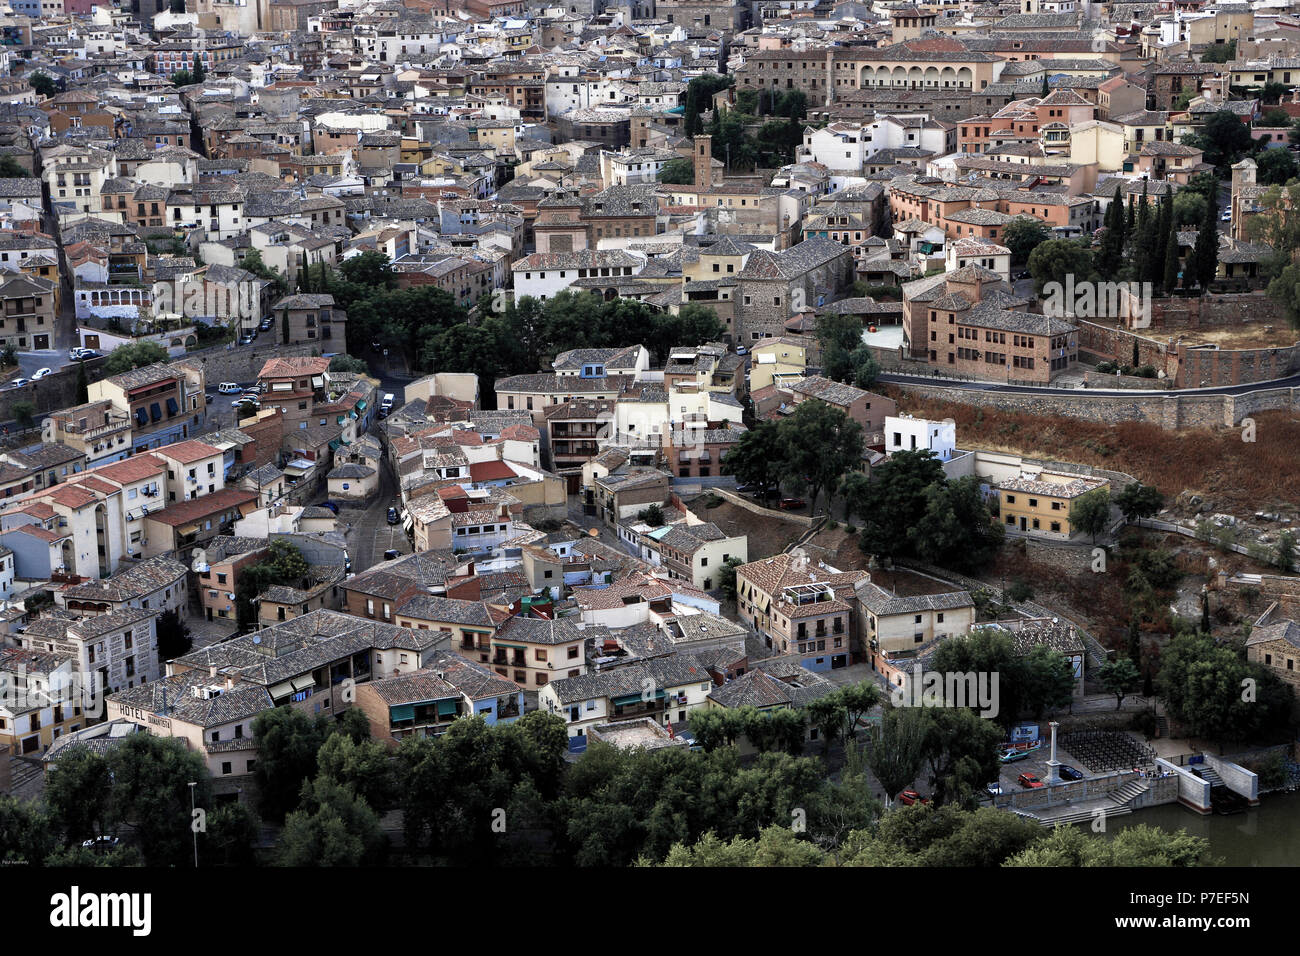 High angle view of Toldeo, Spain - Stock Image